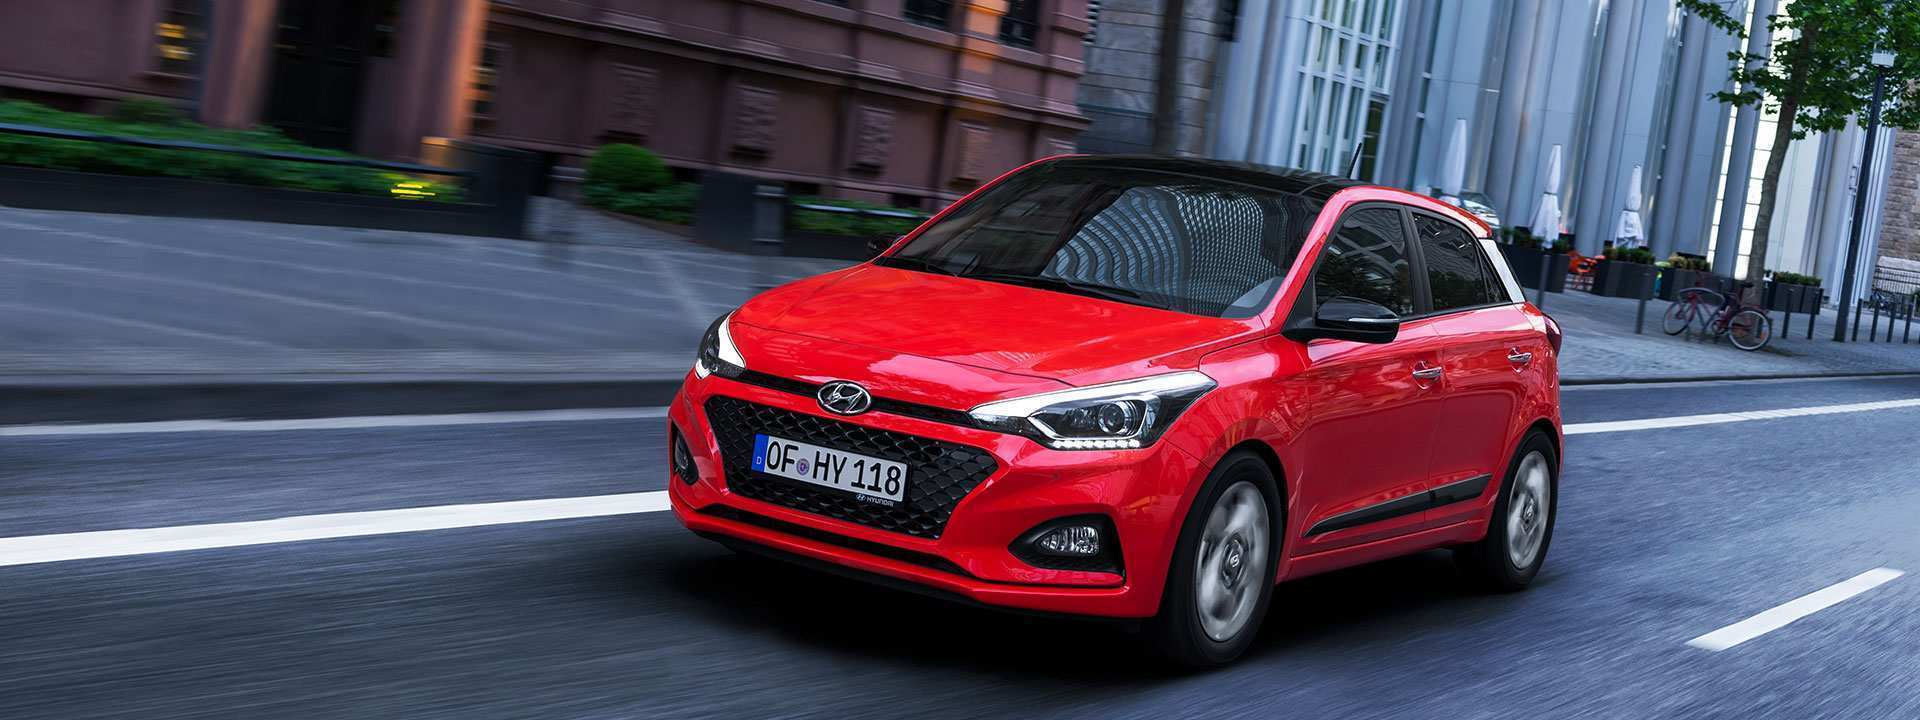 24 Best 2019 Hyundai I20 Rumors